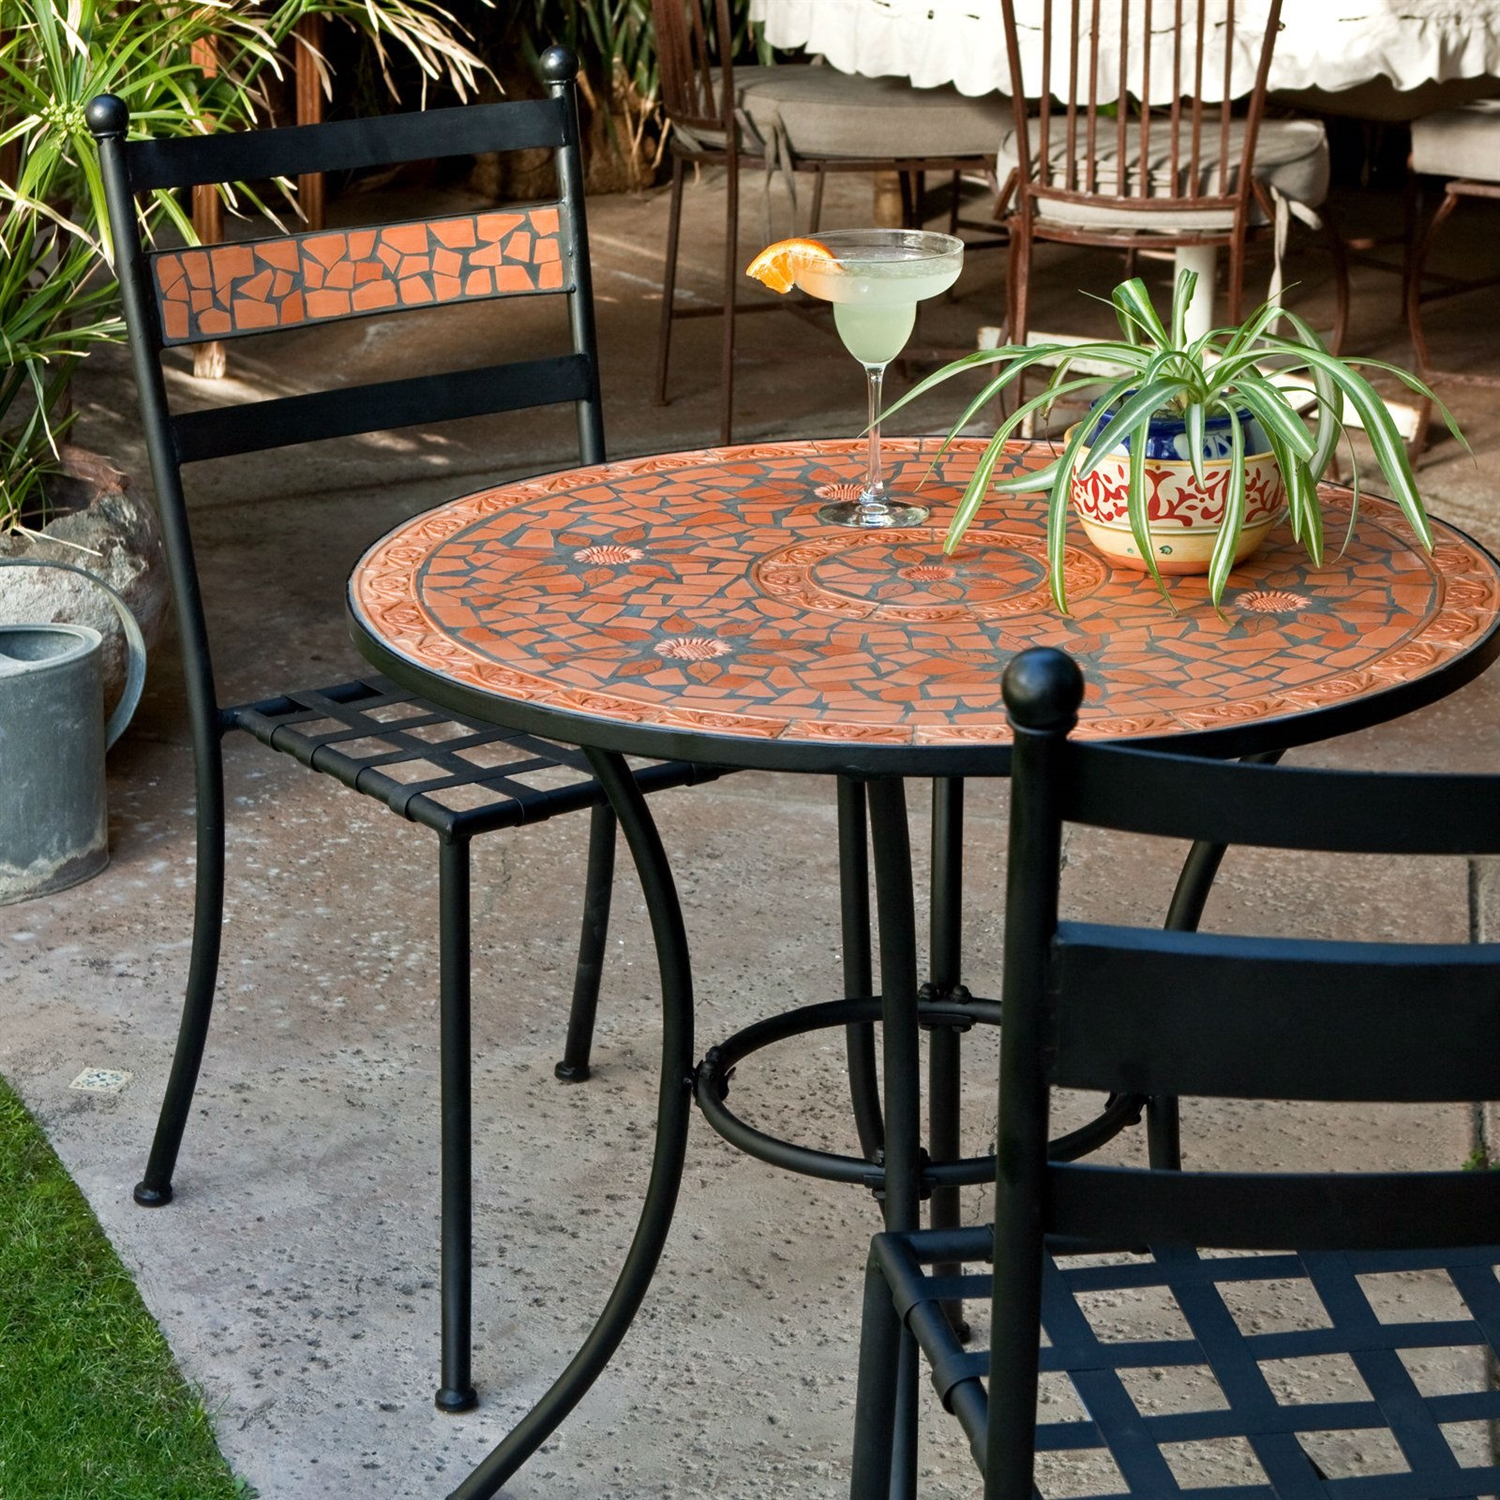 Bistro Sets 3-piece black metal patio bistro set with terra cotta tiles NXQTBCS